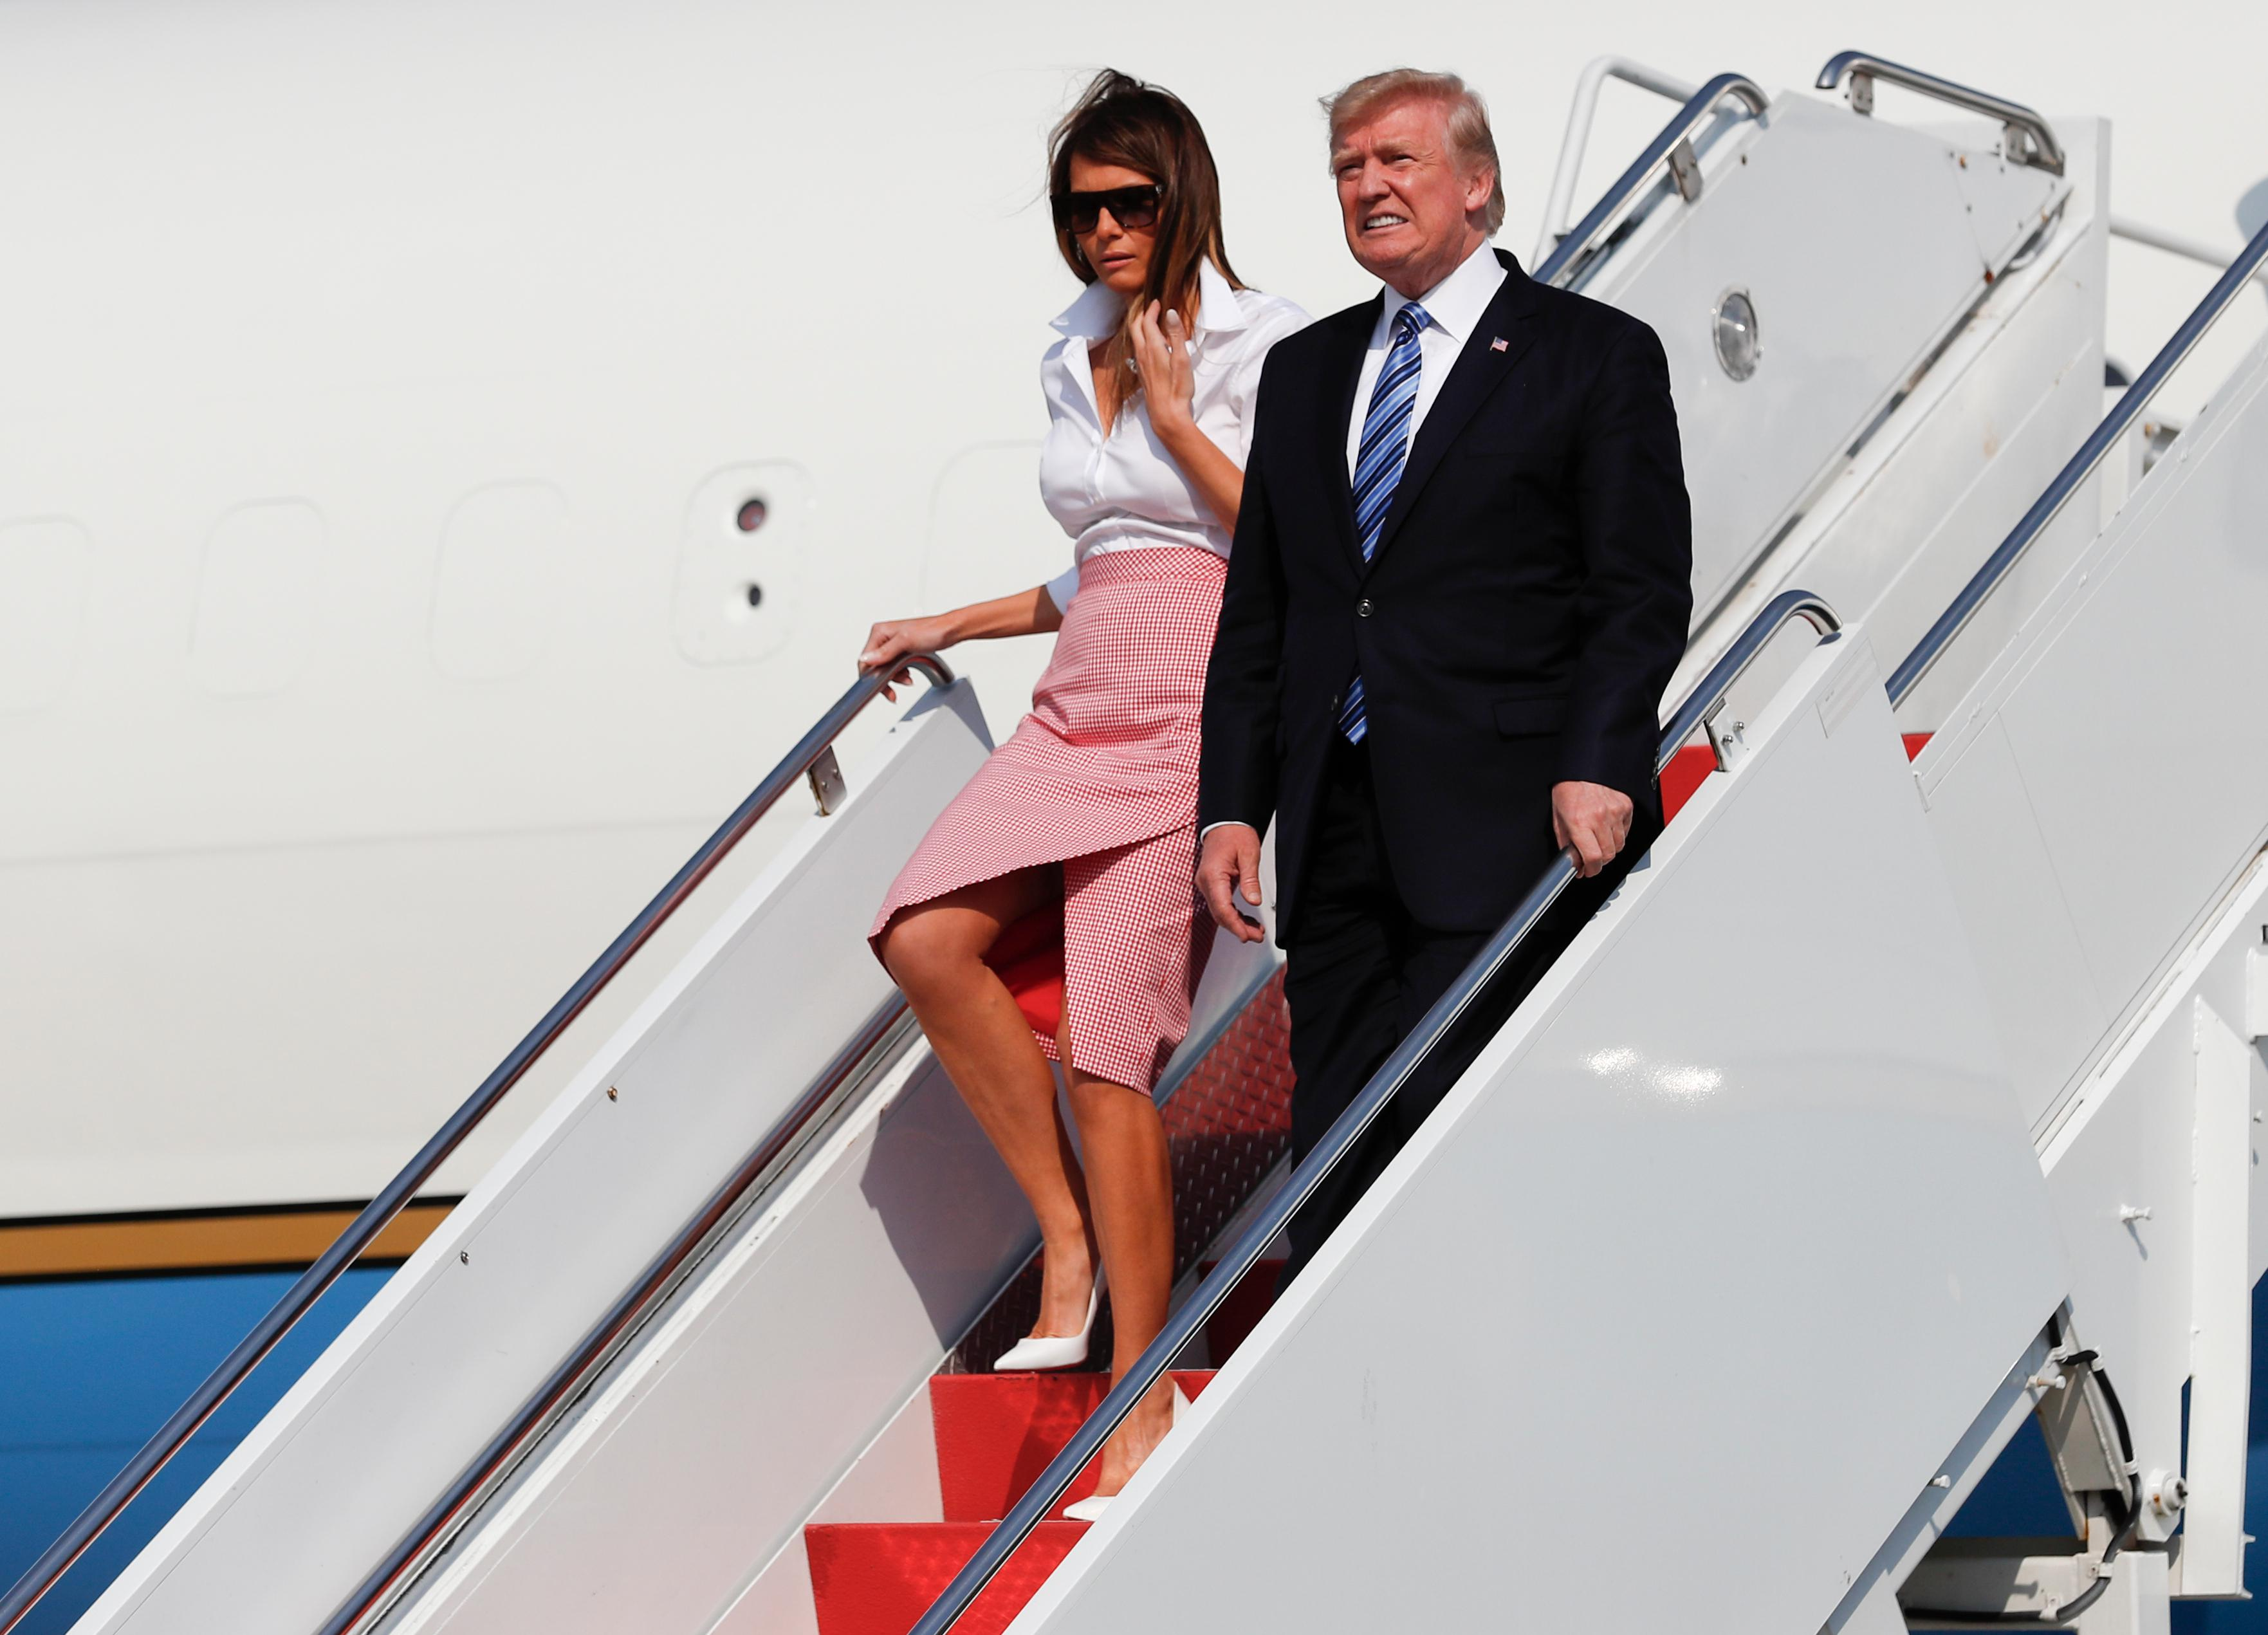 President Donald Trump and first lady Melania Trump arrive on Air Force One at Morristown Municipal Airport, in Morristown, N.J., Friday, June 30, 2017, en route to Trump National Golf Club in Bedminster, N.J.. (AP Photo/Carolyn Kaster)